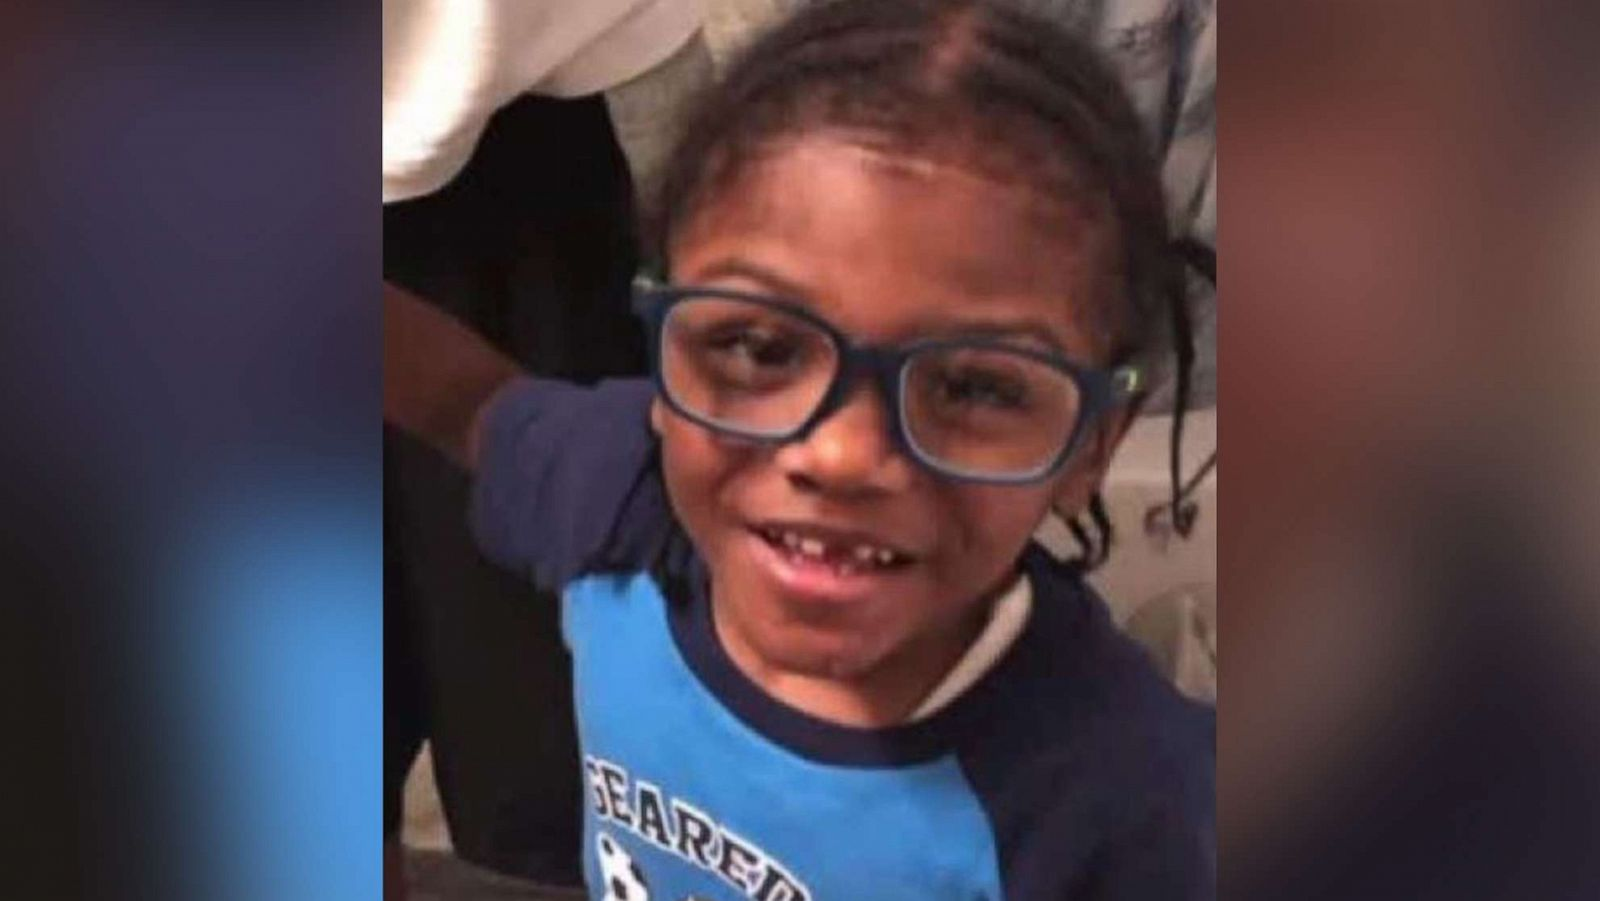 Baltimore Mother Took Lyft To Dispose Of 4 Year Old Malachi